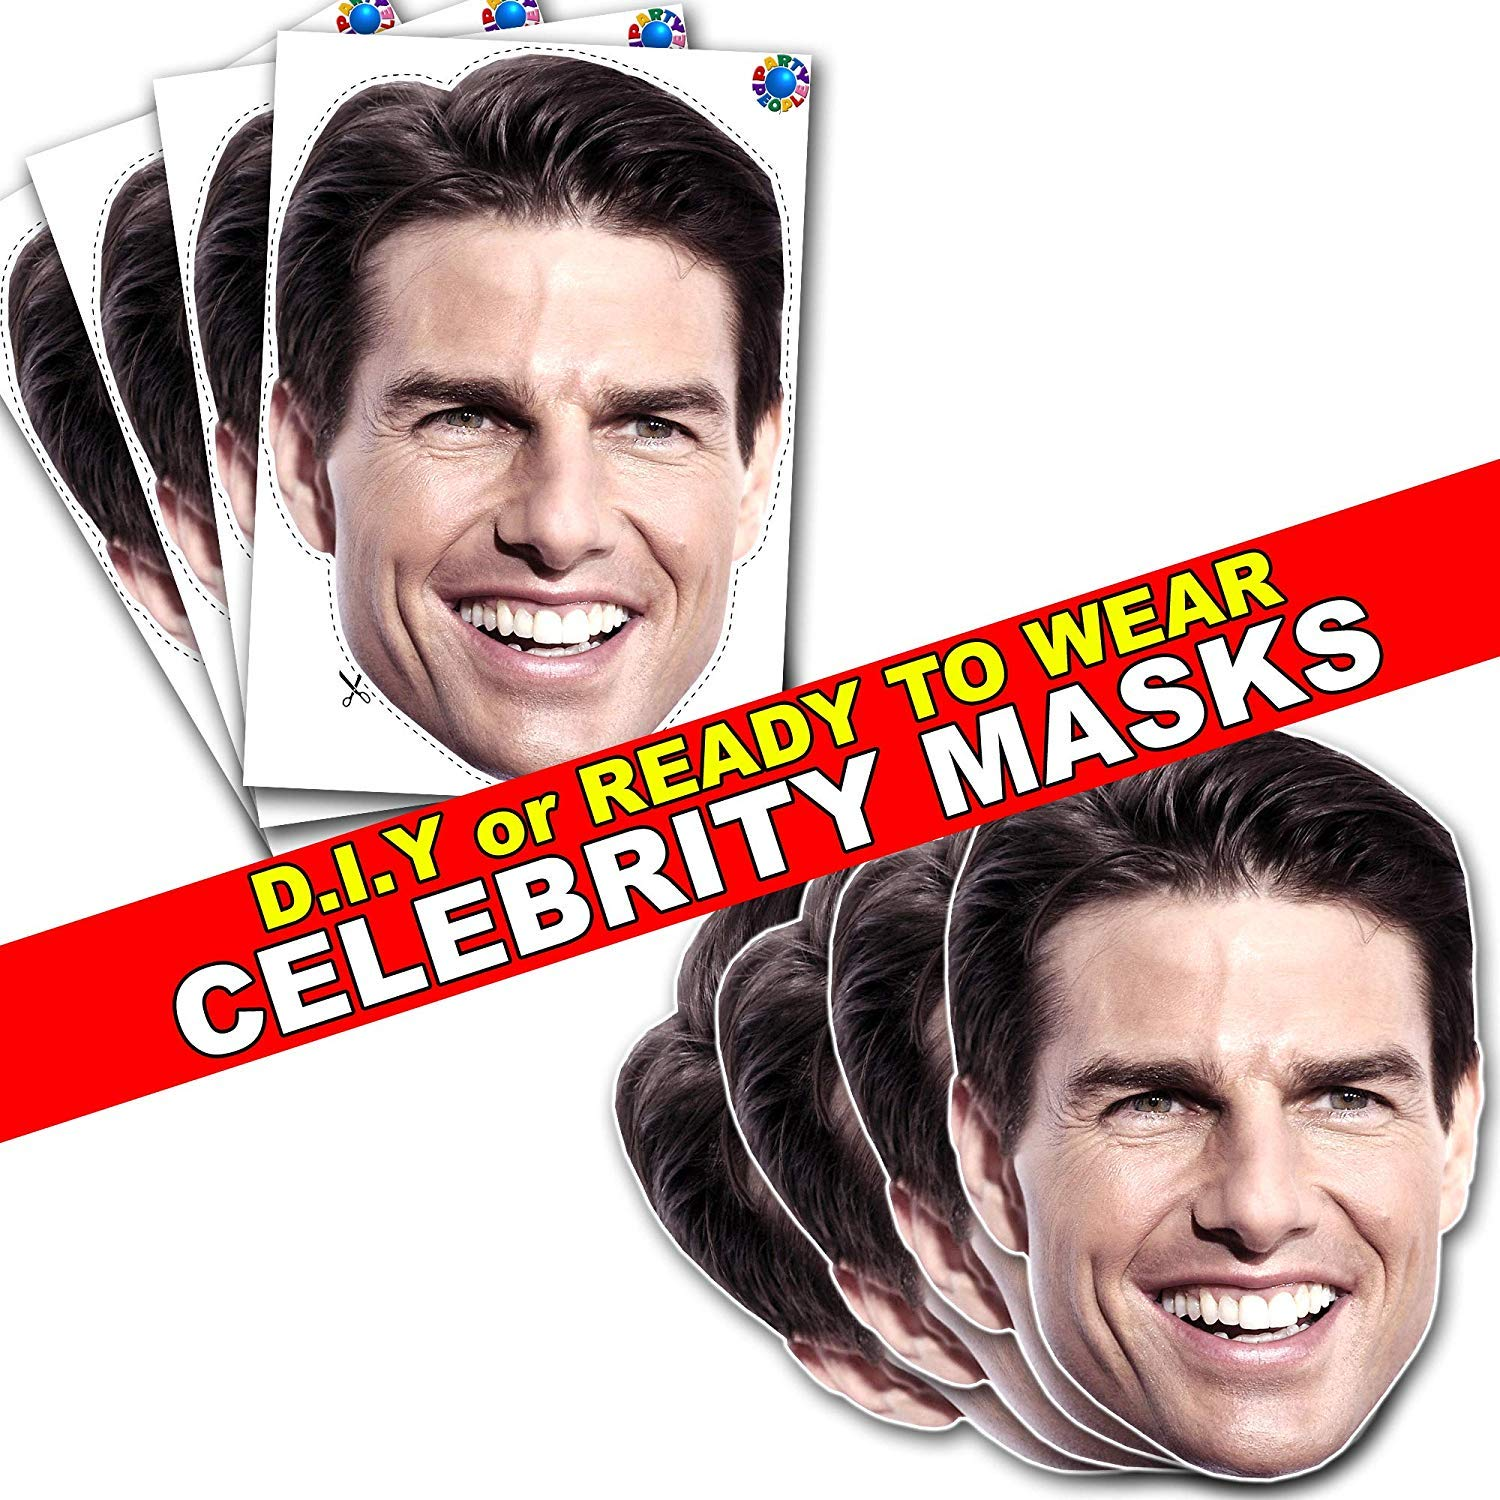 Larger Than Life mask. Celebrity Cutouts Tom Cruise Big Head